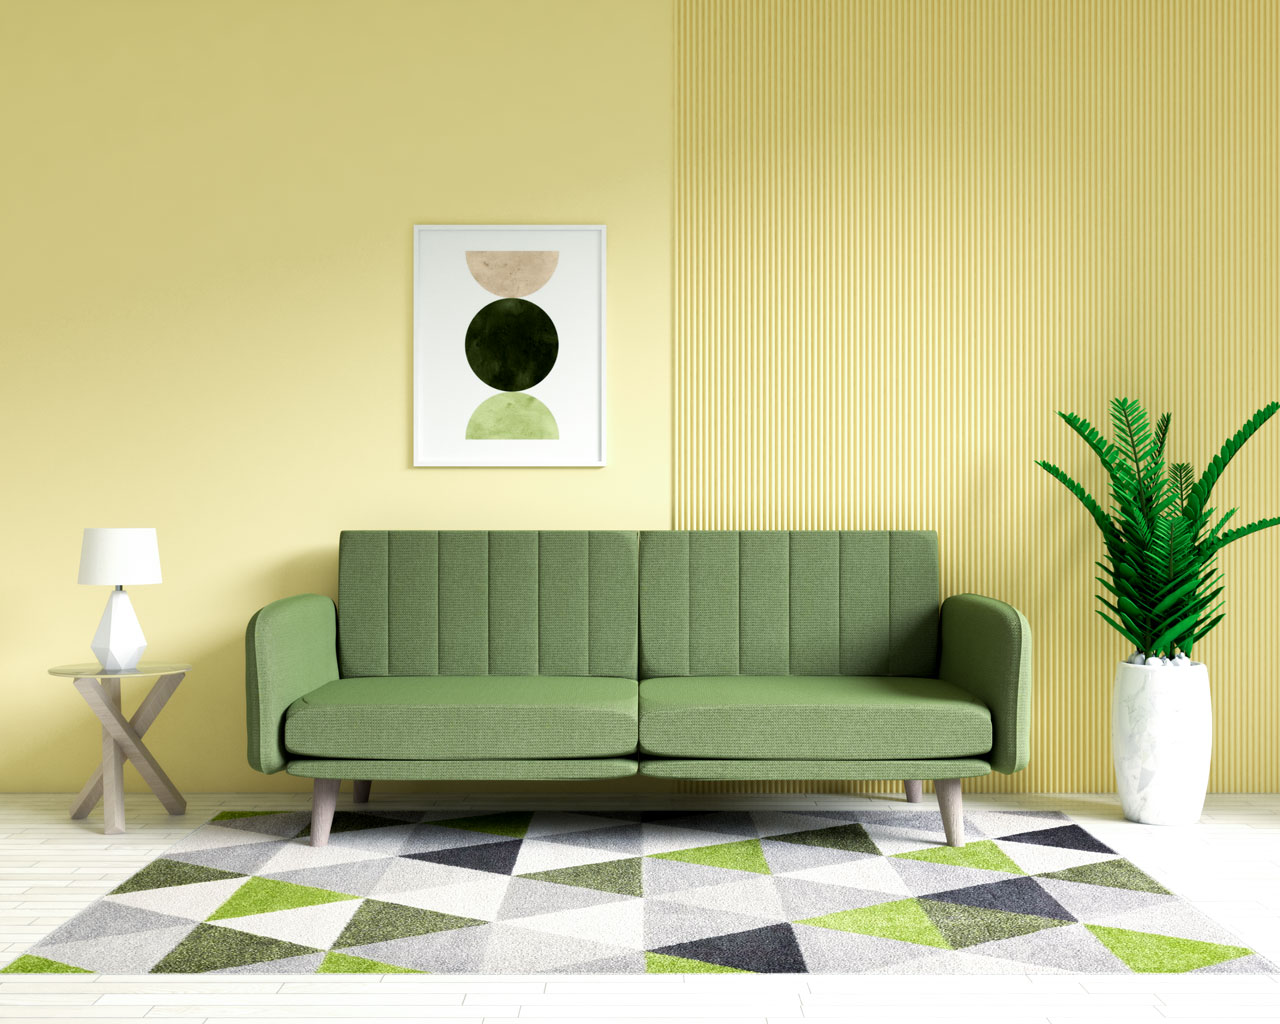 Olive green couch with yellow walls